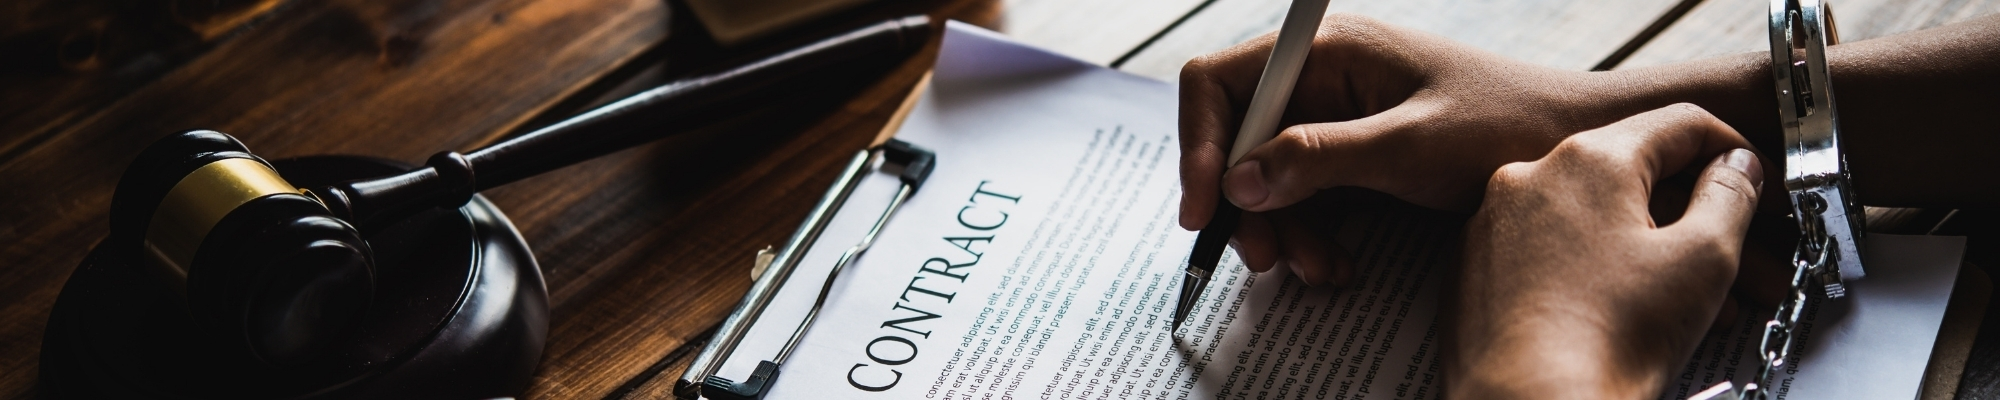 How to Protect Your Business From Unfair Contract?